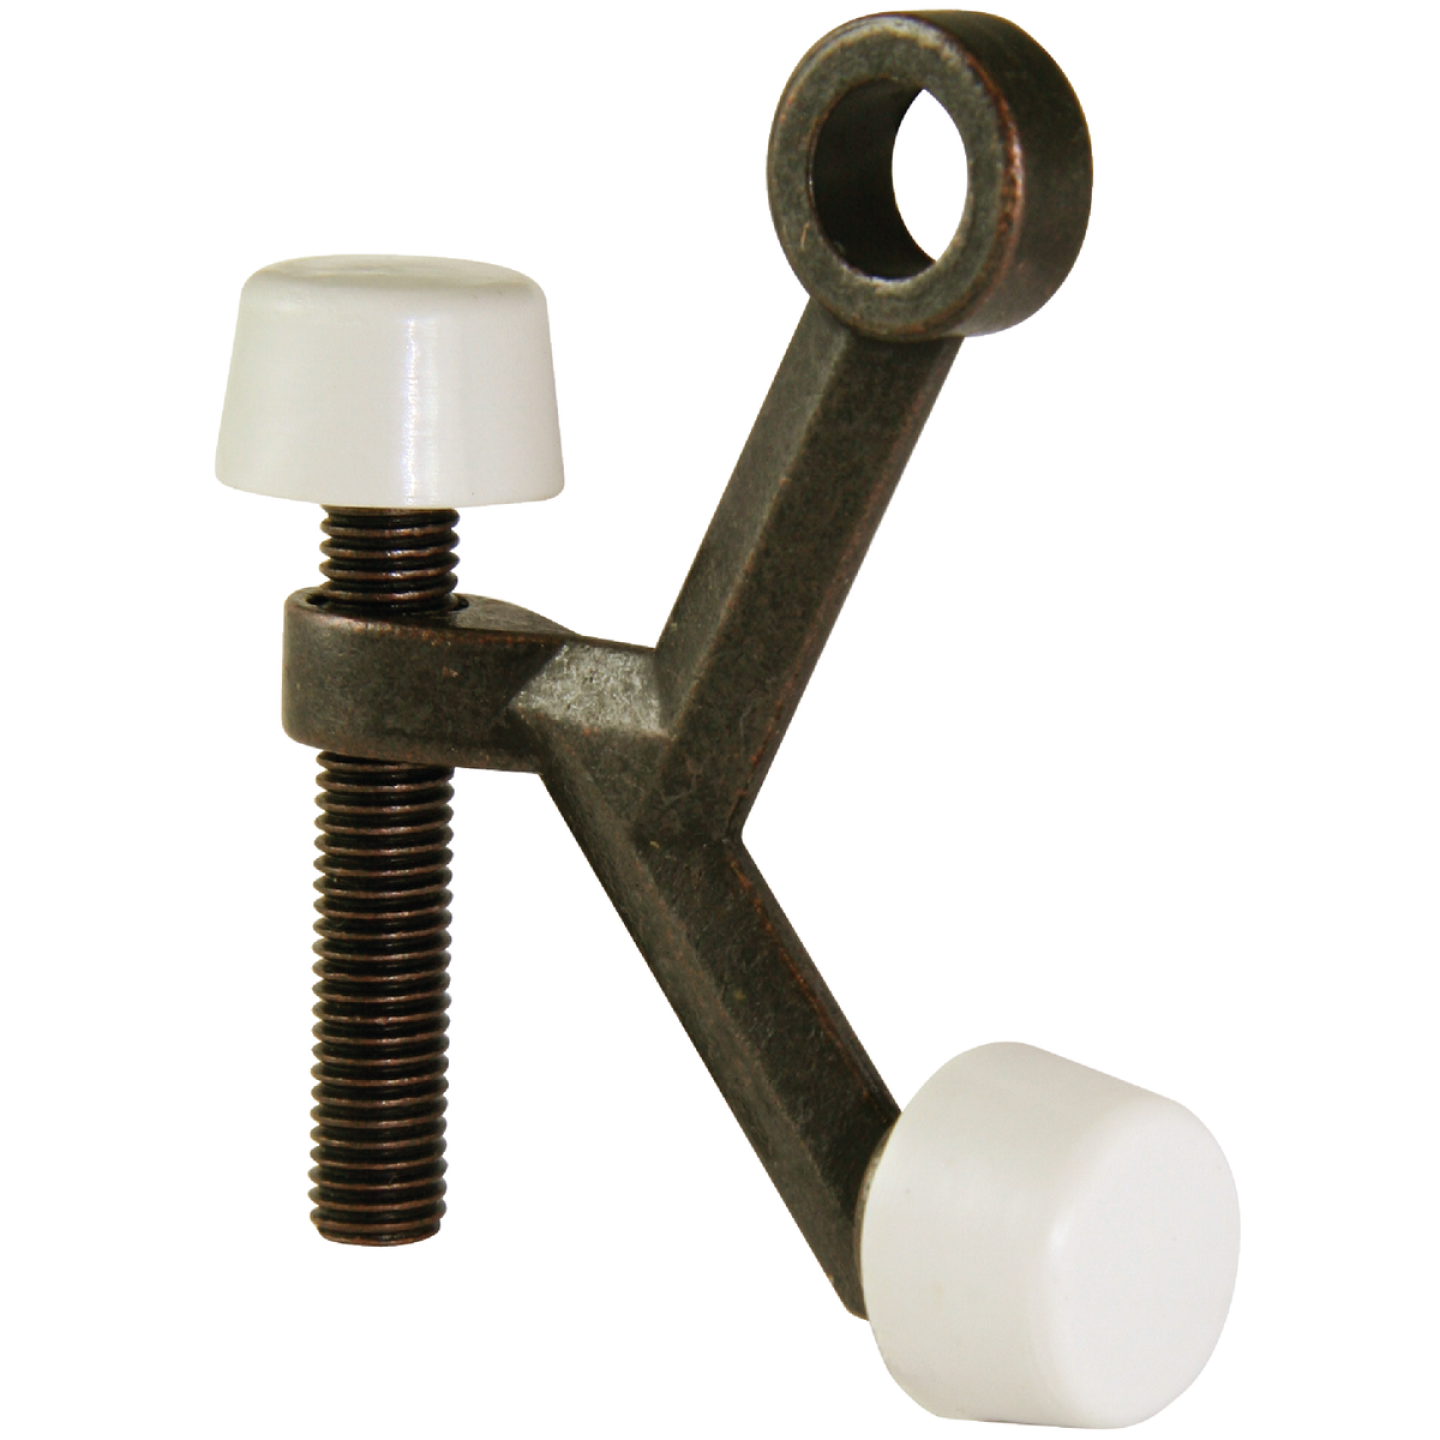 Ultra Hardware 3 In. Oil Rubbed Bronze Hinge Pin Door Stop Image 1